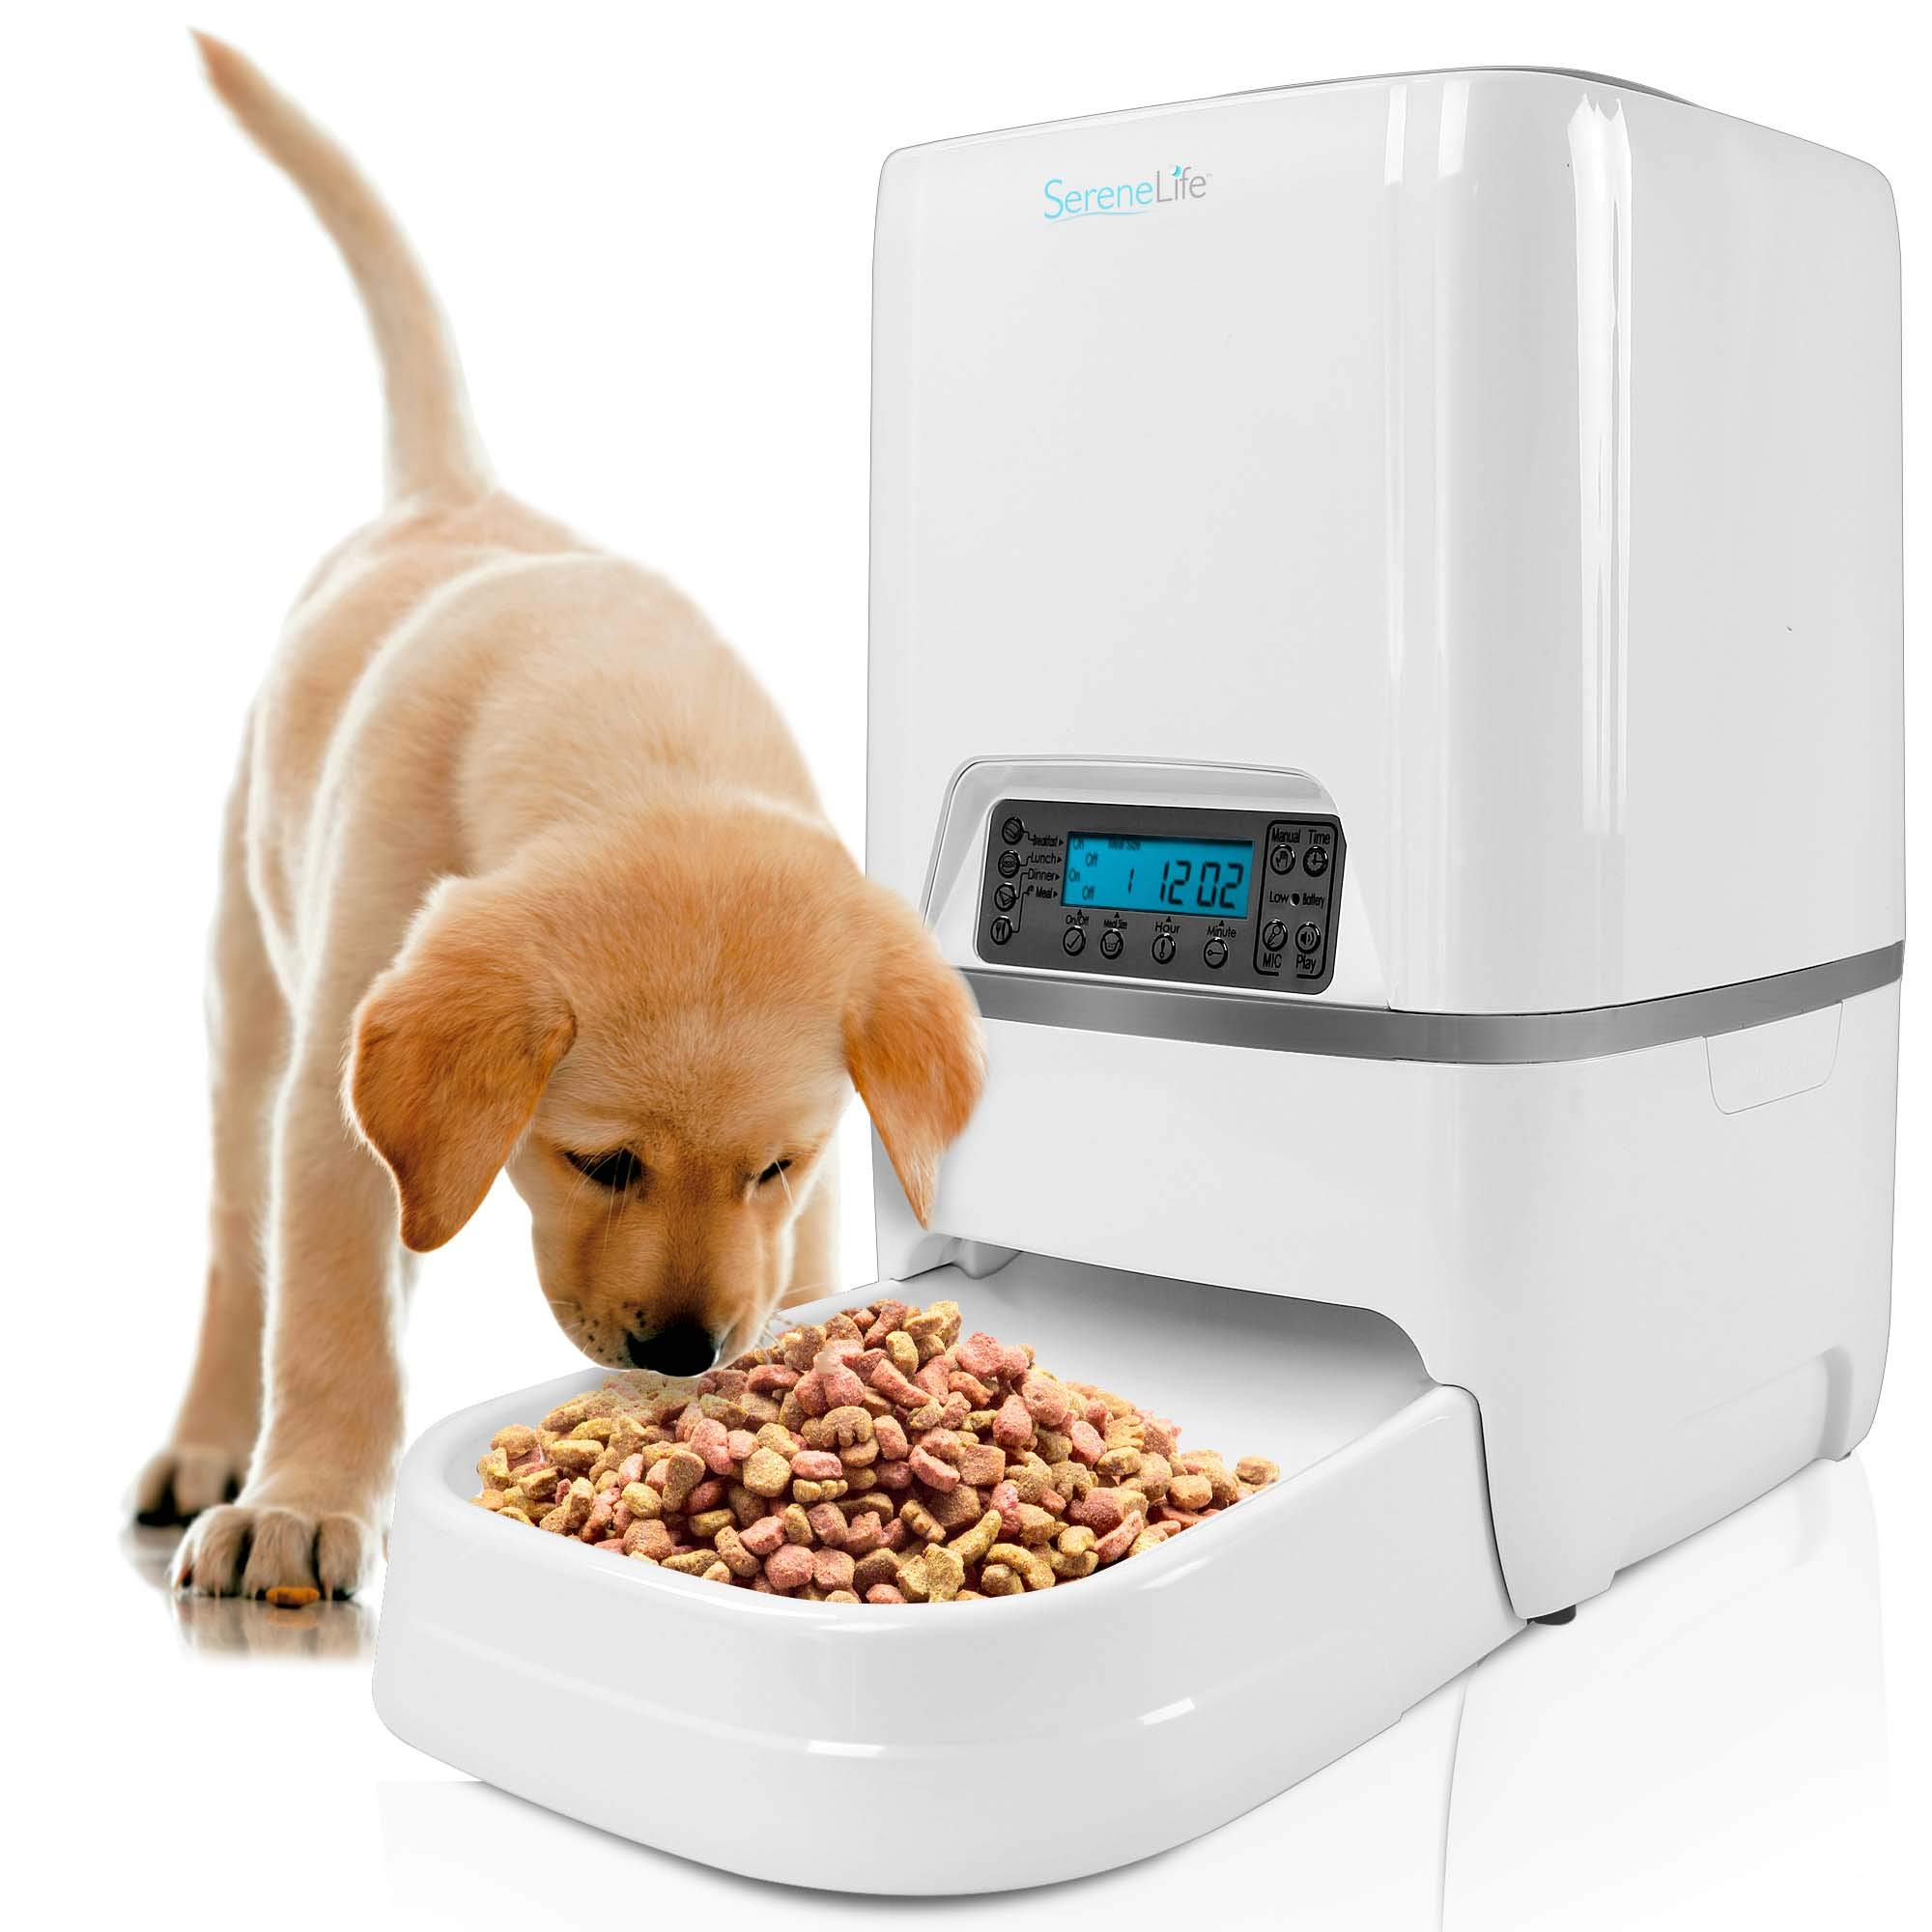 SereneLife Automatic Pet Feeder Built